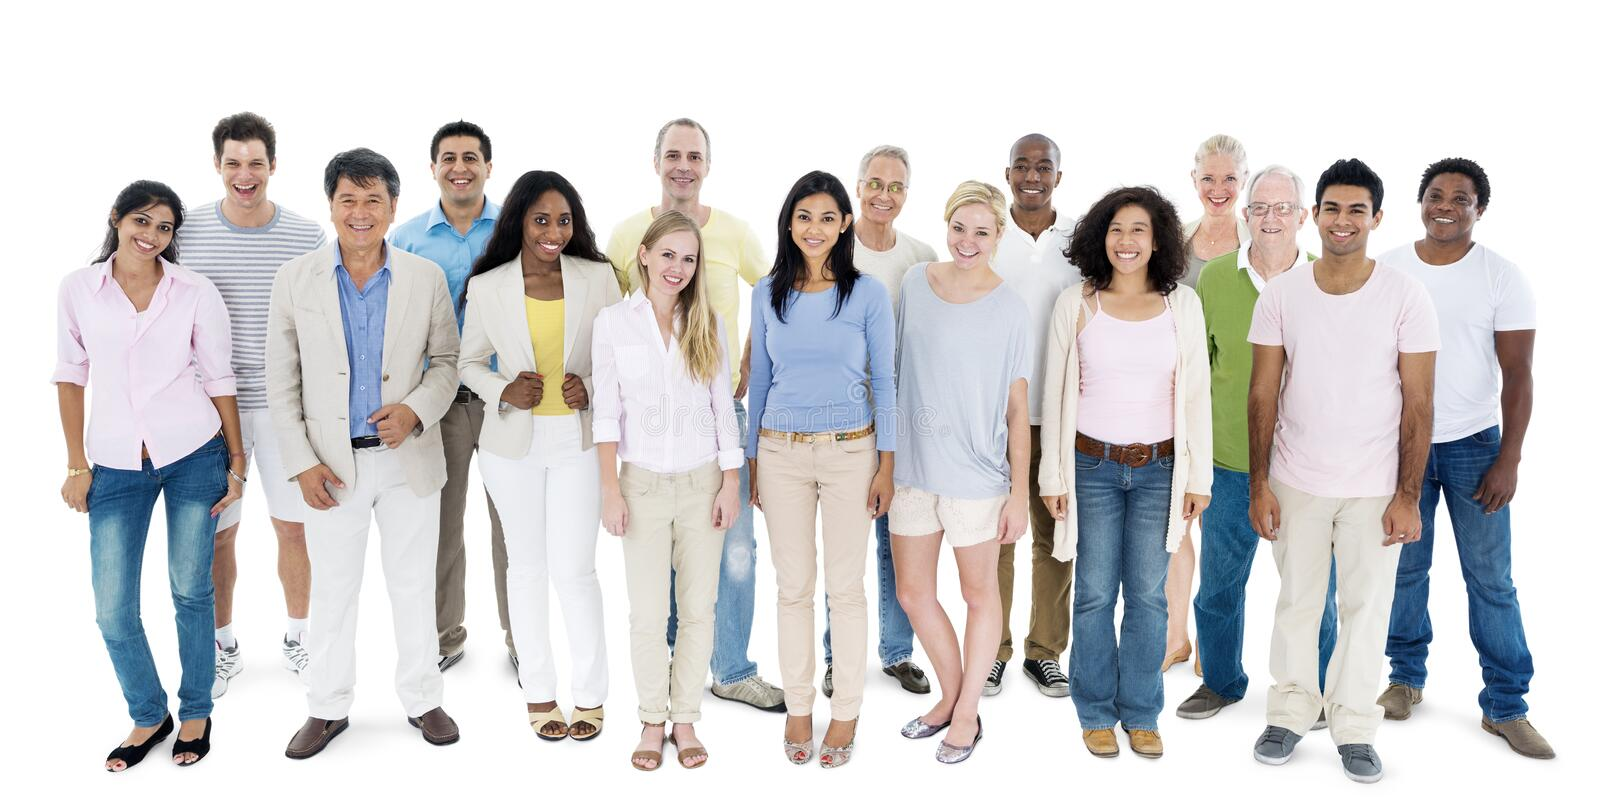 People Diversity Casual Group Ethnicity Community Concept.  royalty free stock image